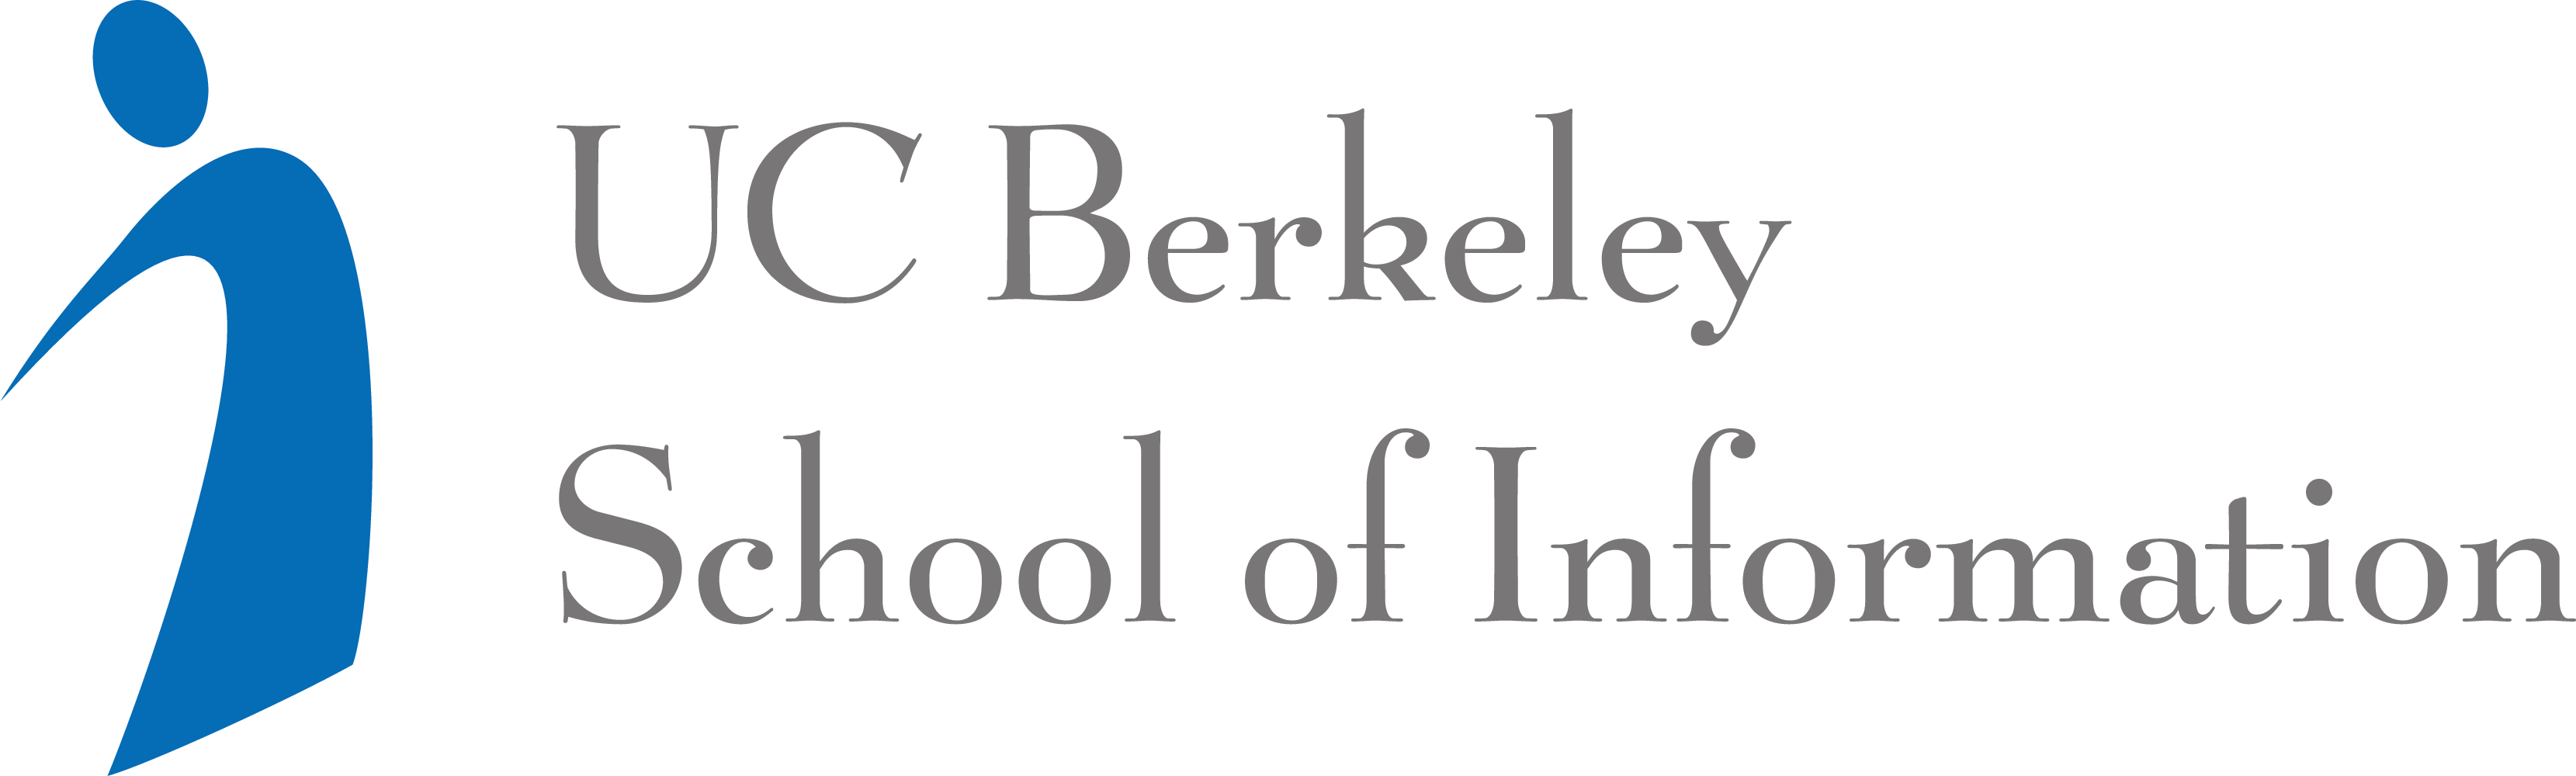 UC Berkeley School of Information